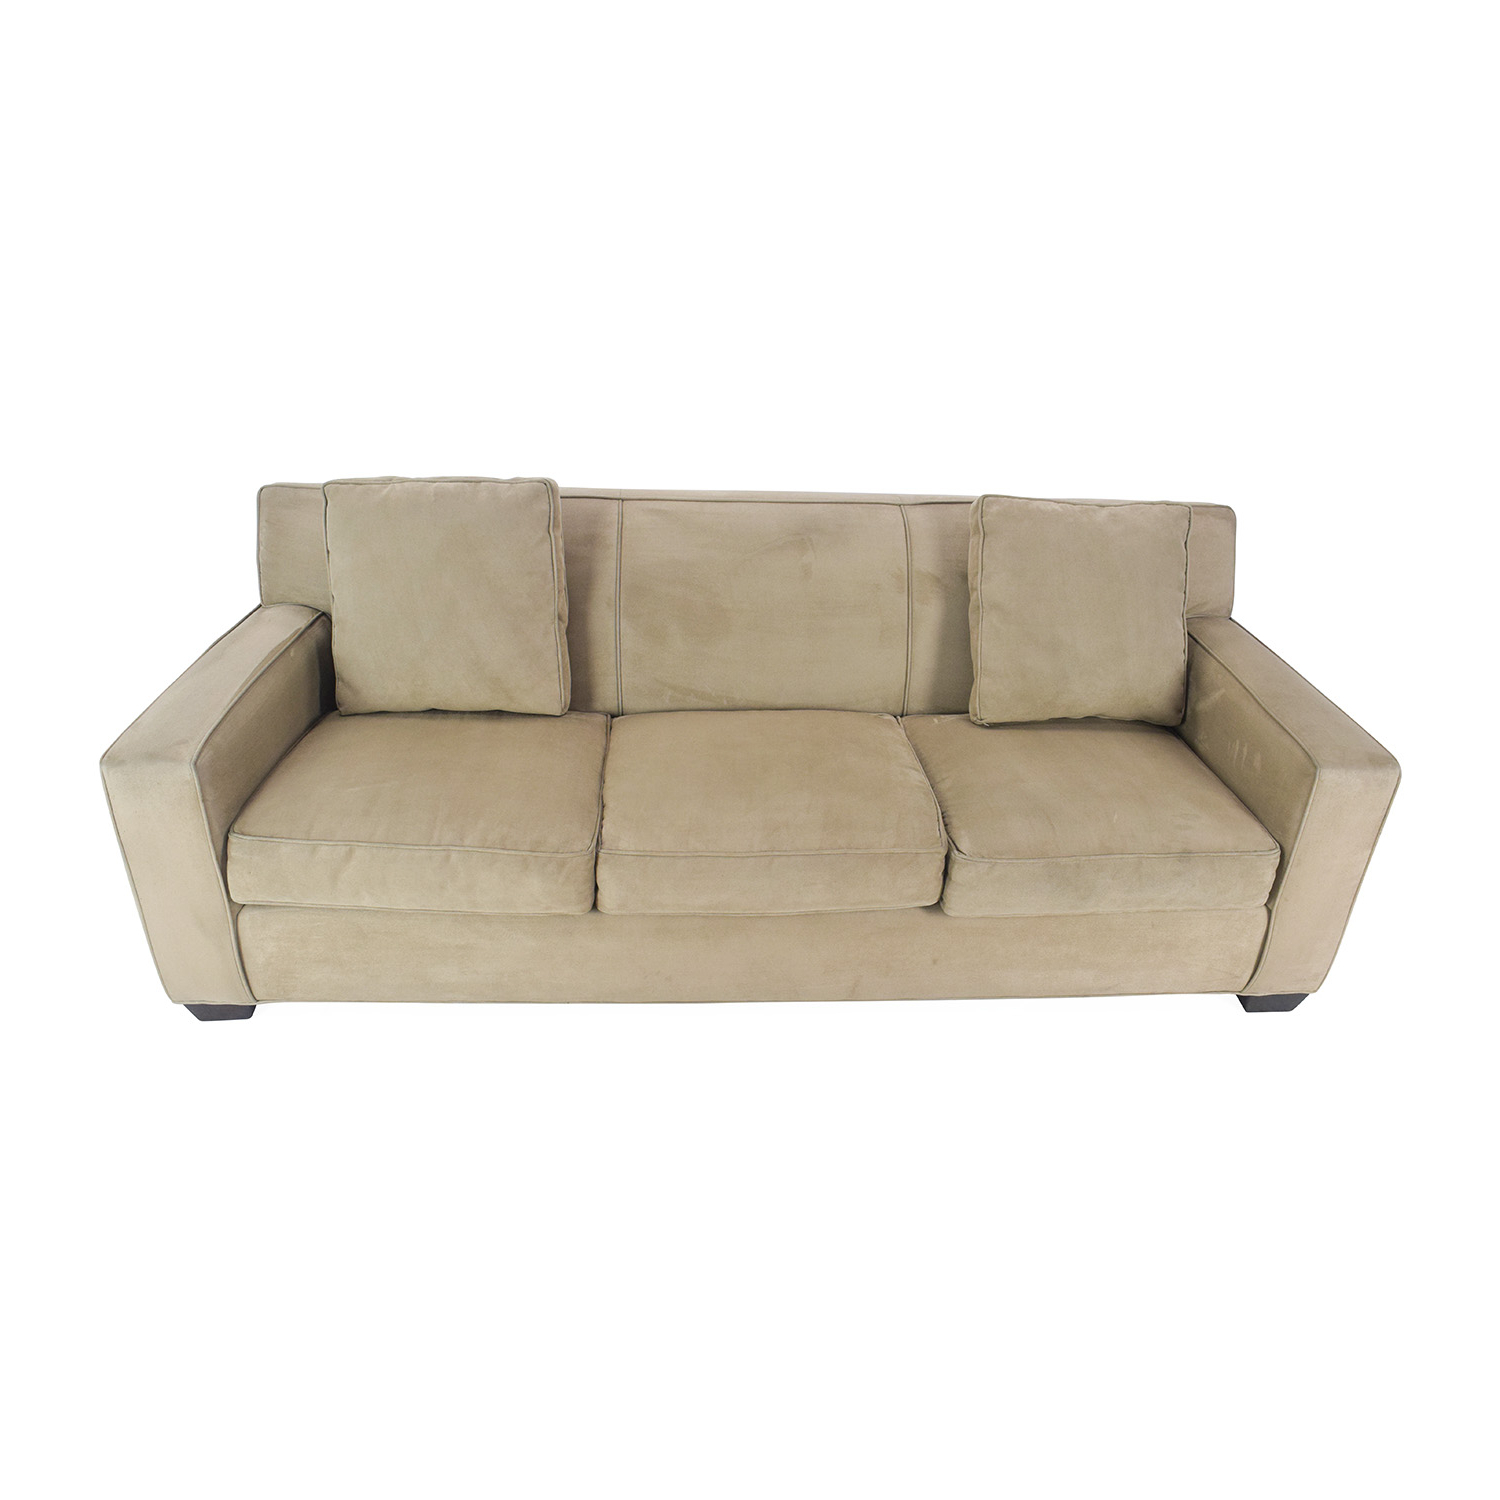 [%78% Off – Crate And Barrel Crate And Barrel Cameron Sofa / Sofas Regarding Popular Cameron Sofa Chairs|cameron Sofa Chairs Pertaining To Most Recent 78% Off – Crate And Barrel Crate And Barrel Cameron Sofa / Sofas|newest Cameron Sofa Chairs Throughout 78% Off – Crate And Barrel Crate And Barrel Cameron Sofa / Sofas|best And Newest 78% Off – Crate And Barrel Crate And Barrel Cameron Sofa / Sofas Intended For Cameron Sofa Chairs%] (View 2 of 20)